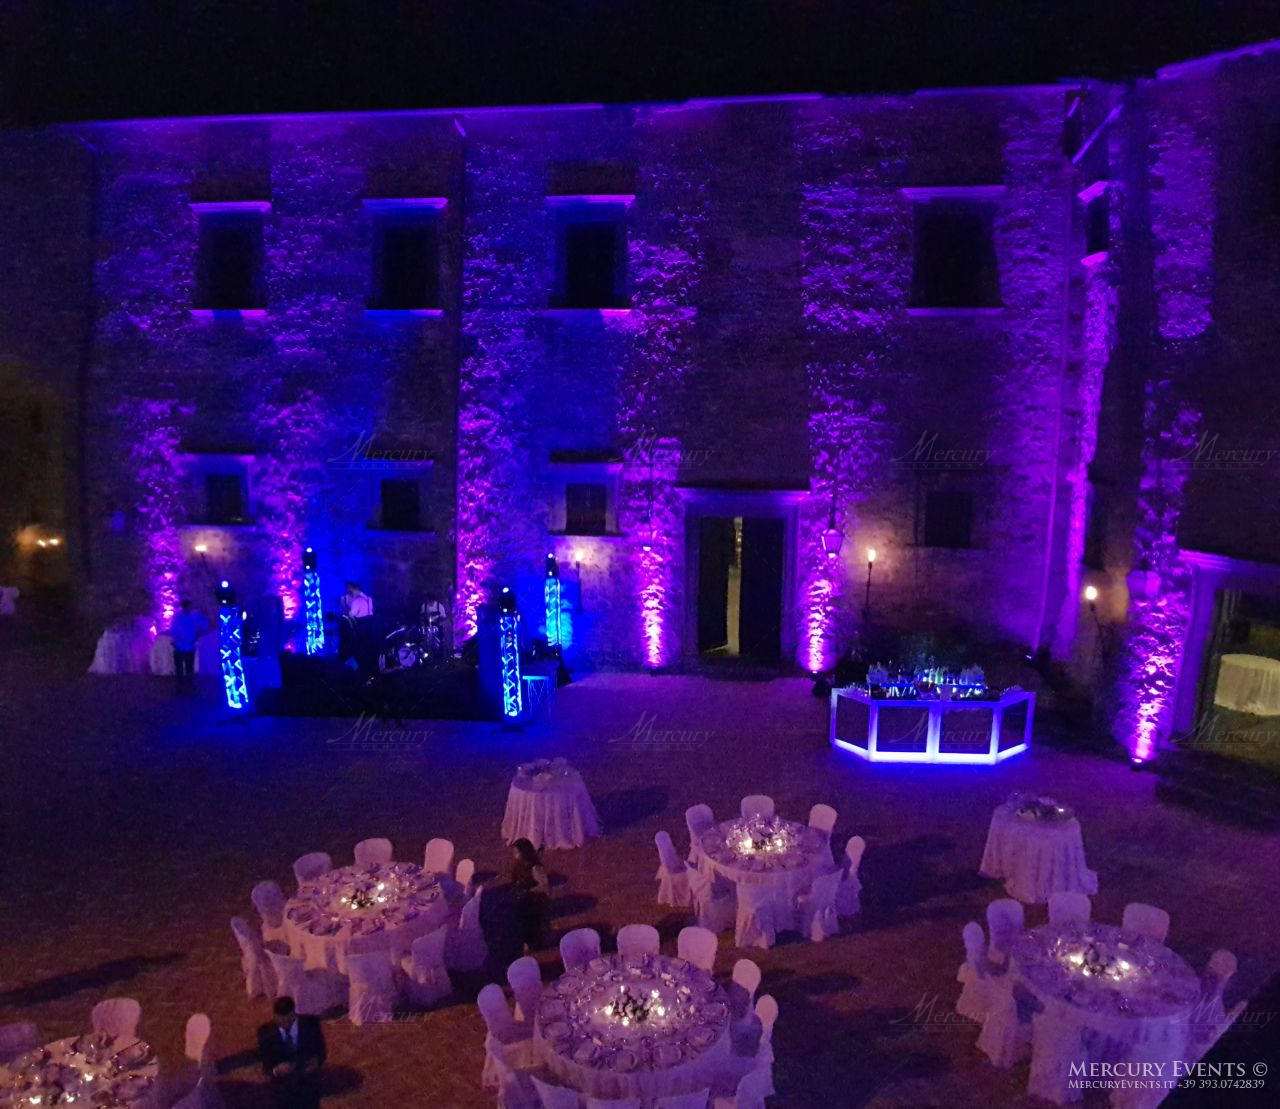 Wedding - Castello Odelschalchi di Bracciano - Mercury Events 2